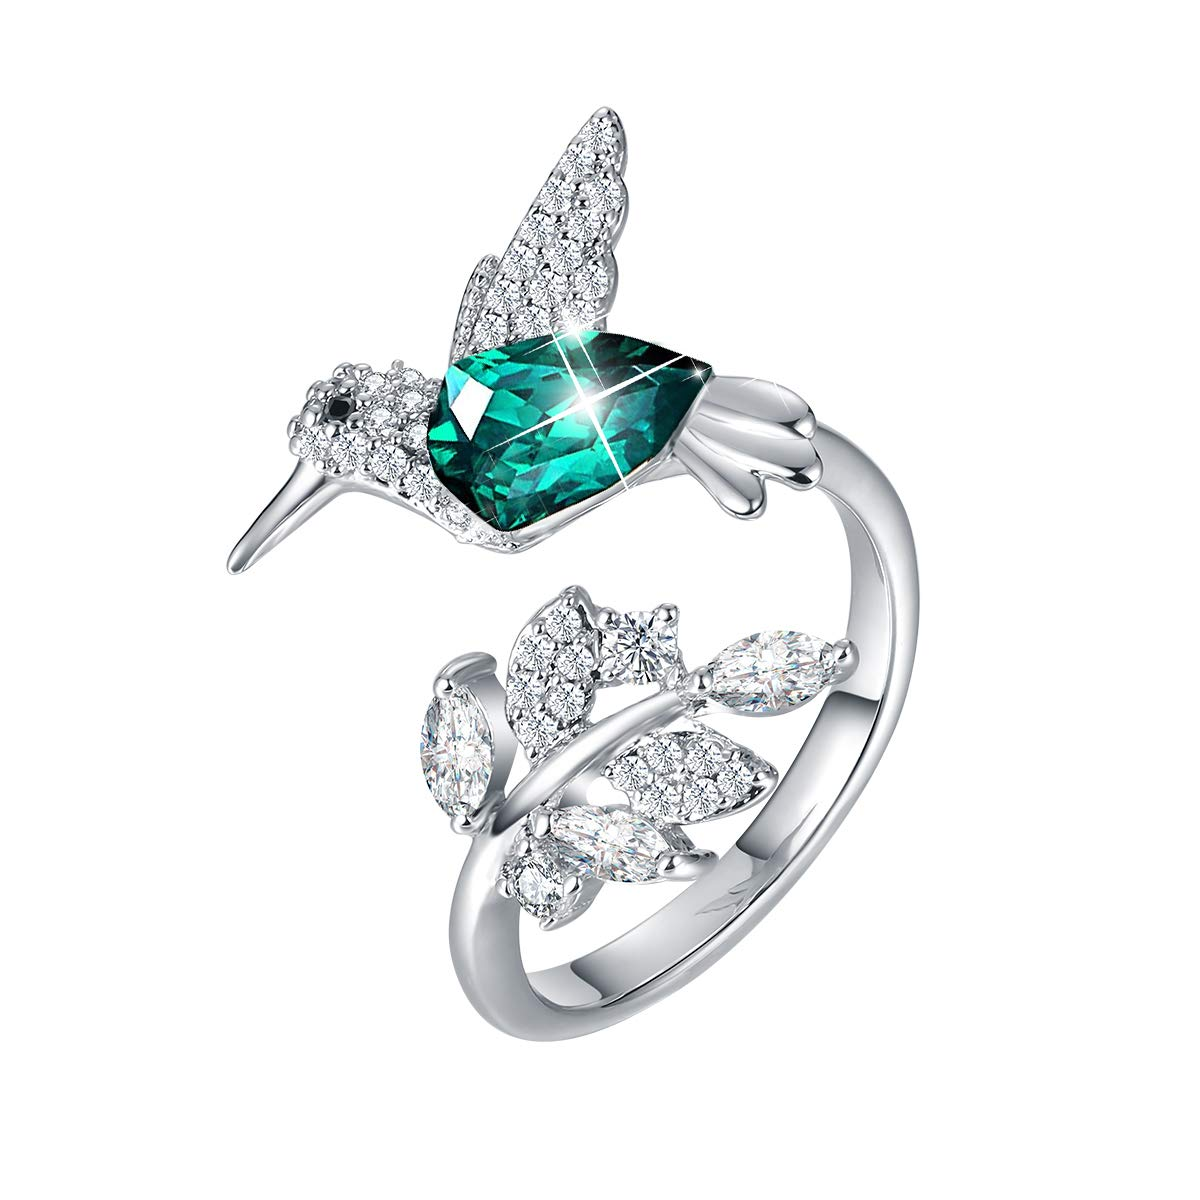 CDE Fine Ring Sterling Silver Hummingbird Open Rings Embellished with Crystals from Swarovski Jewelry Gift for Mothers Day